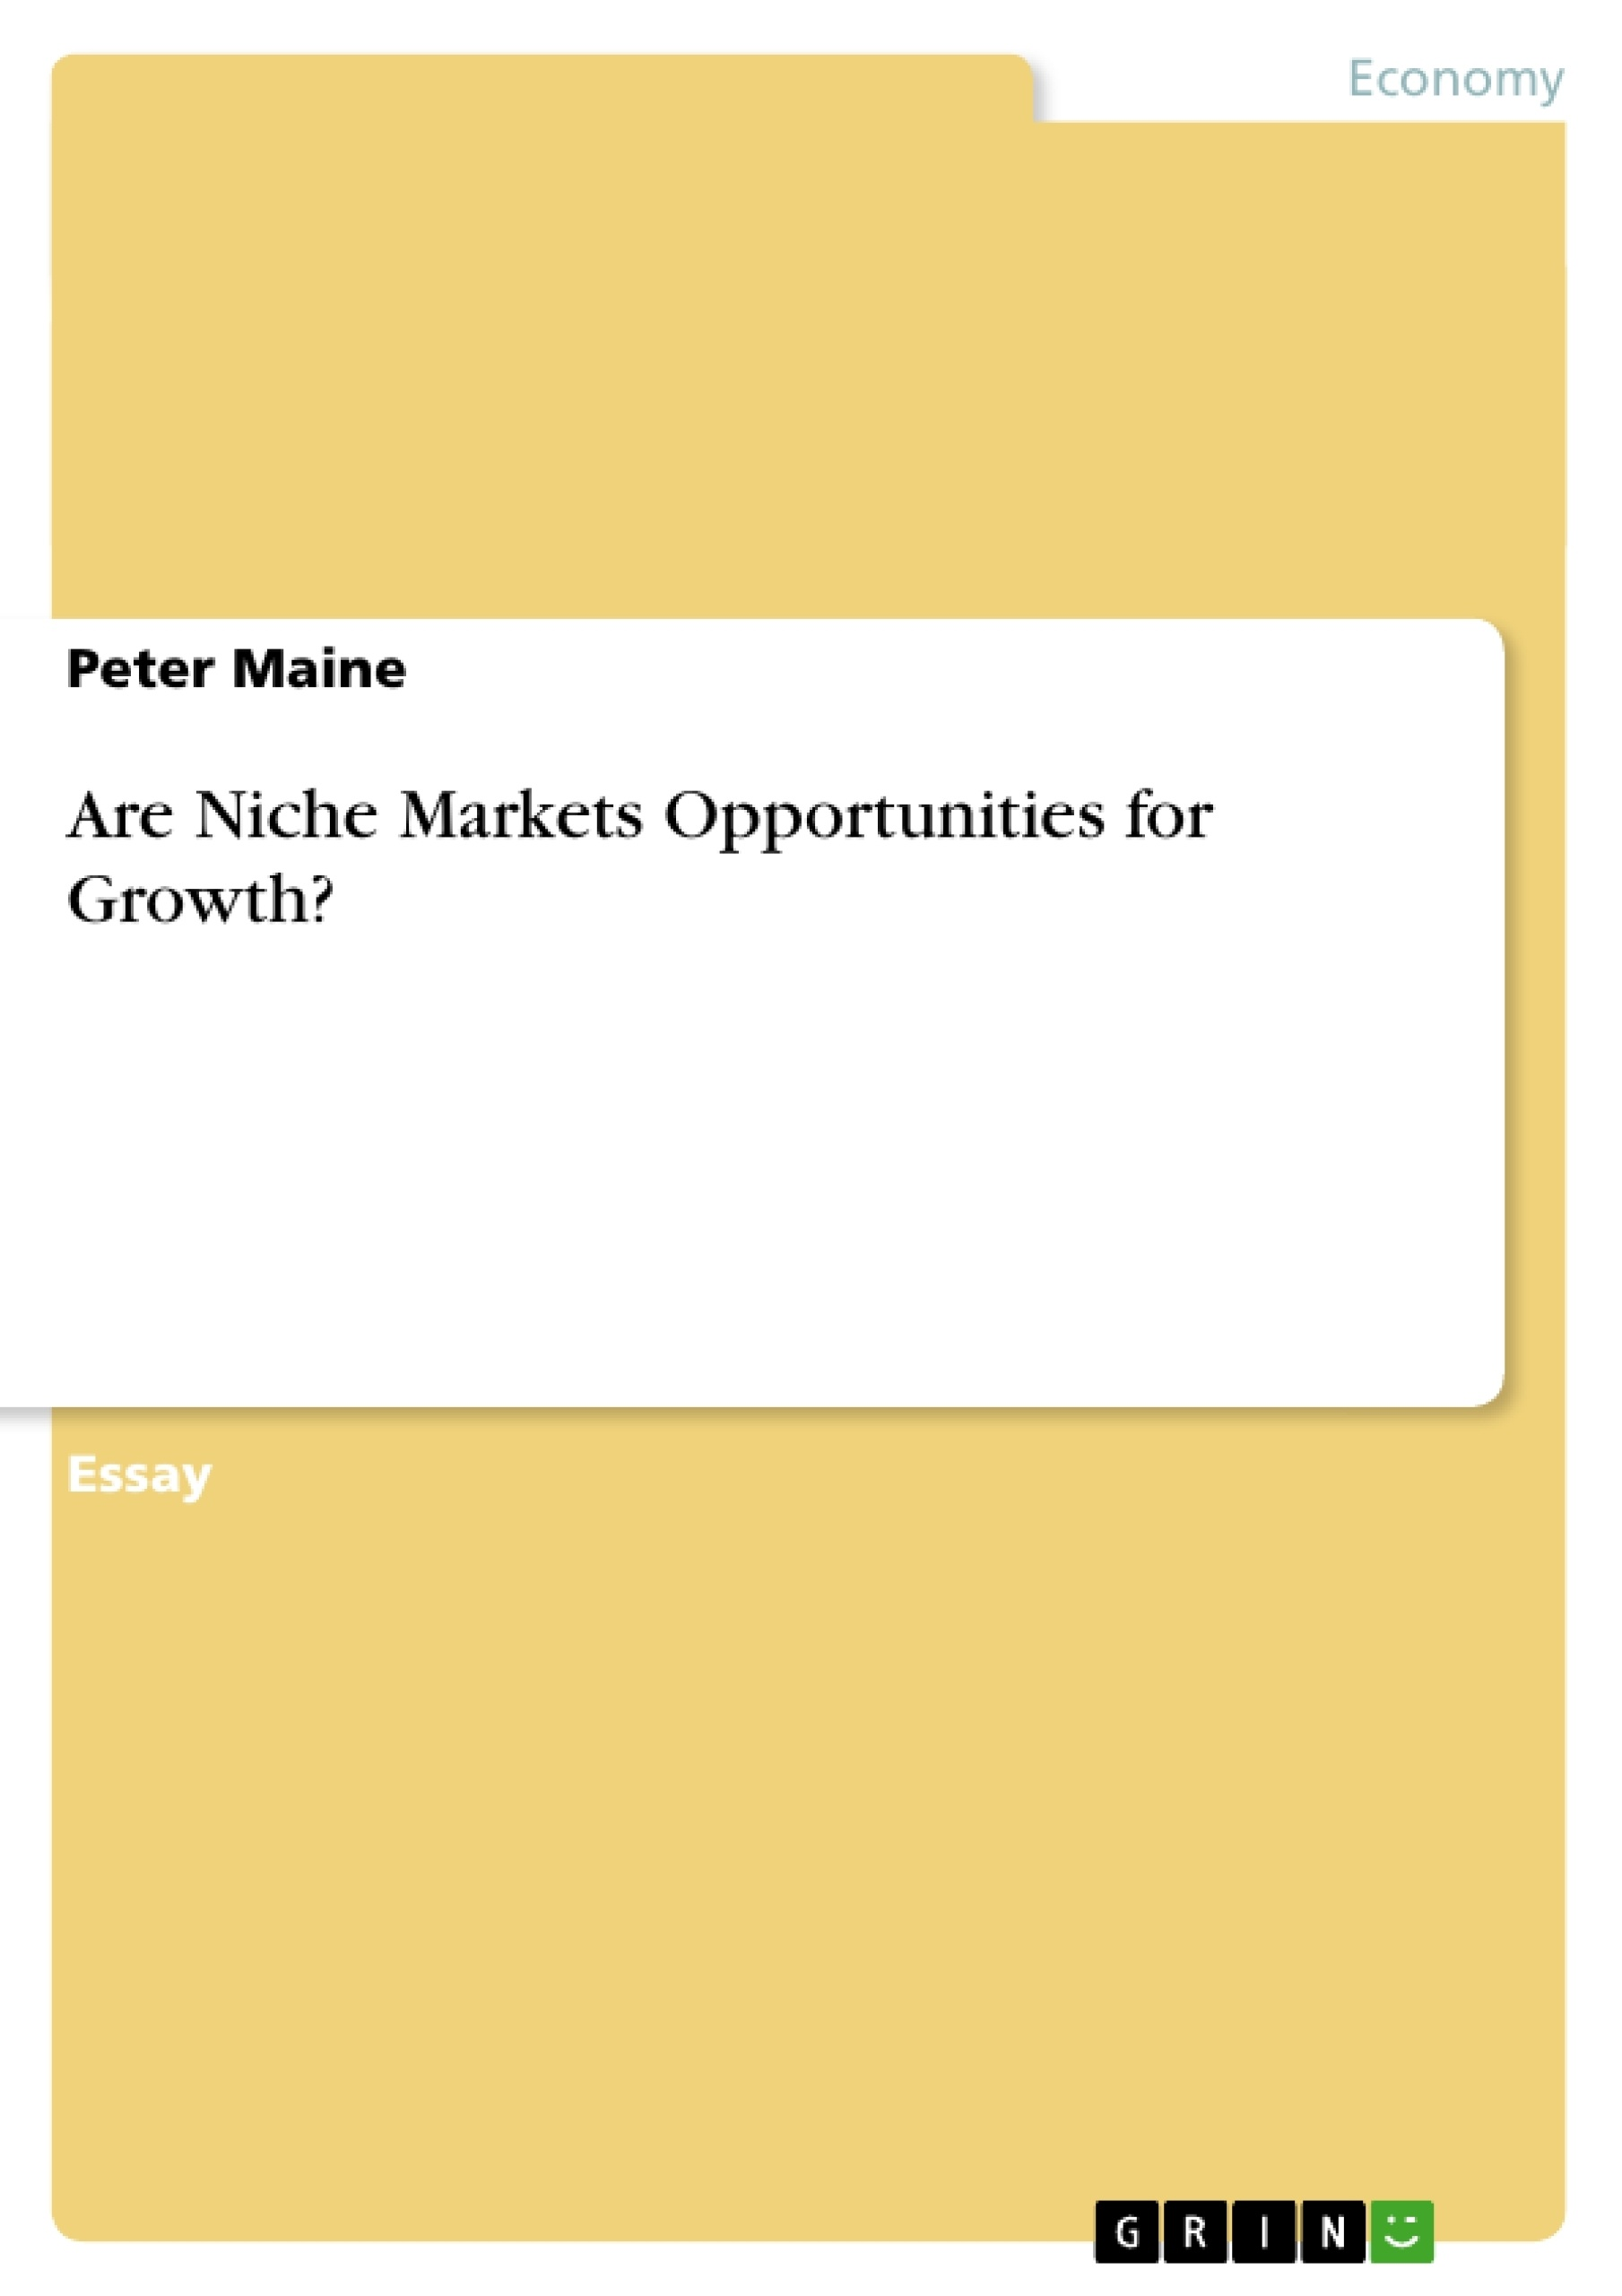 Title: Are Niche Markets Opportunities for Growth?